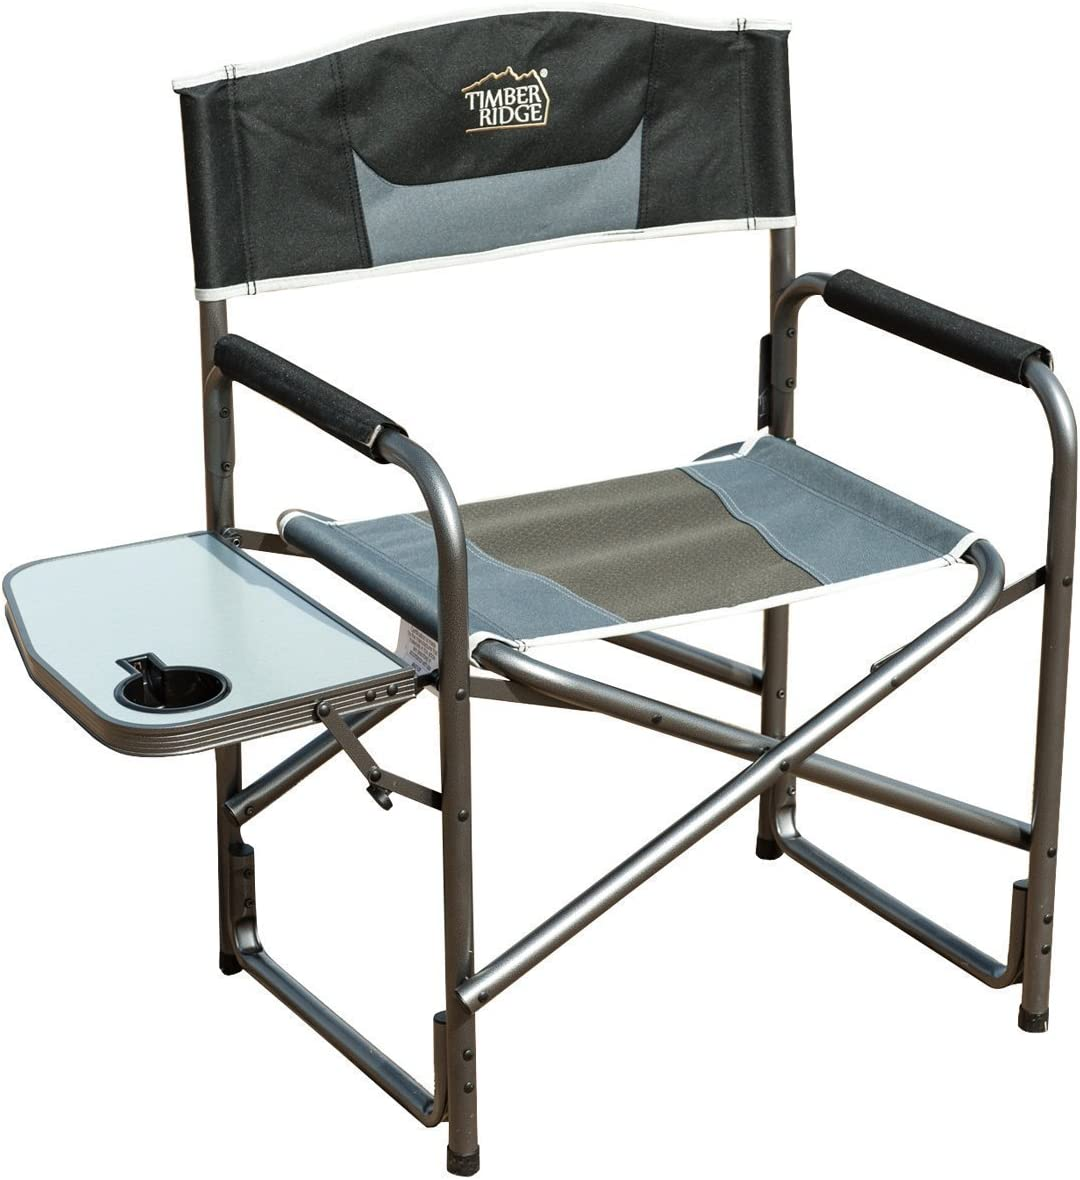 Timber Ridge Director s Chair Folding Aluminum Camping Portable Lightweight Chair Supports 300lbs with Side Table, Outdoor